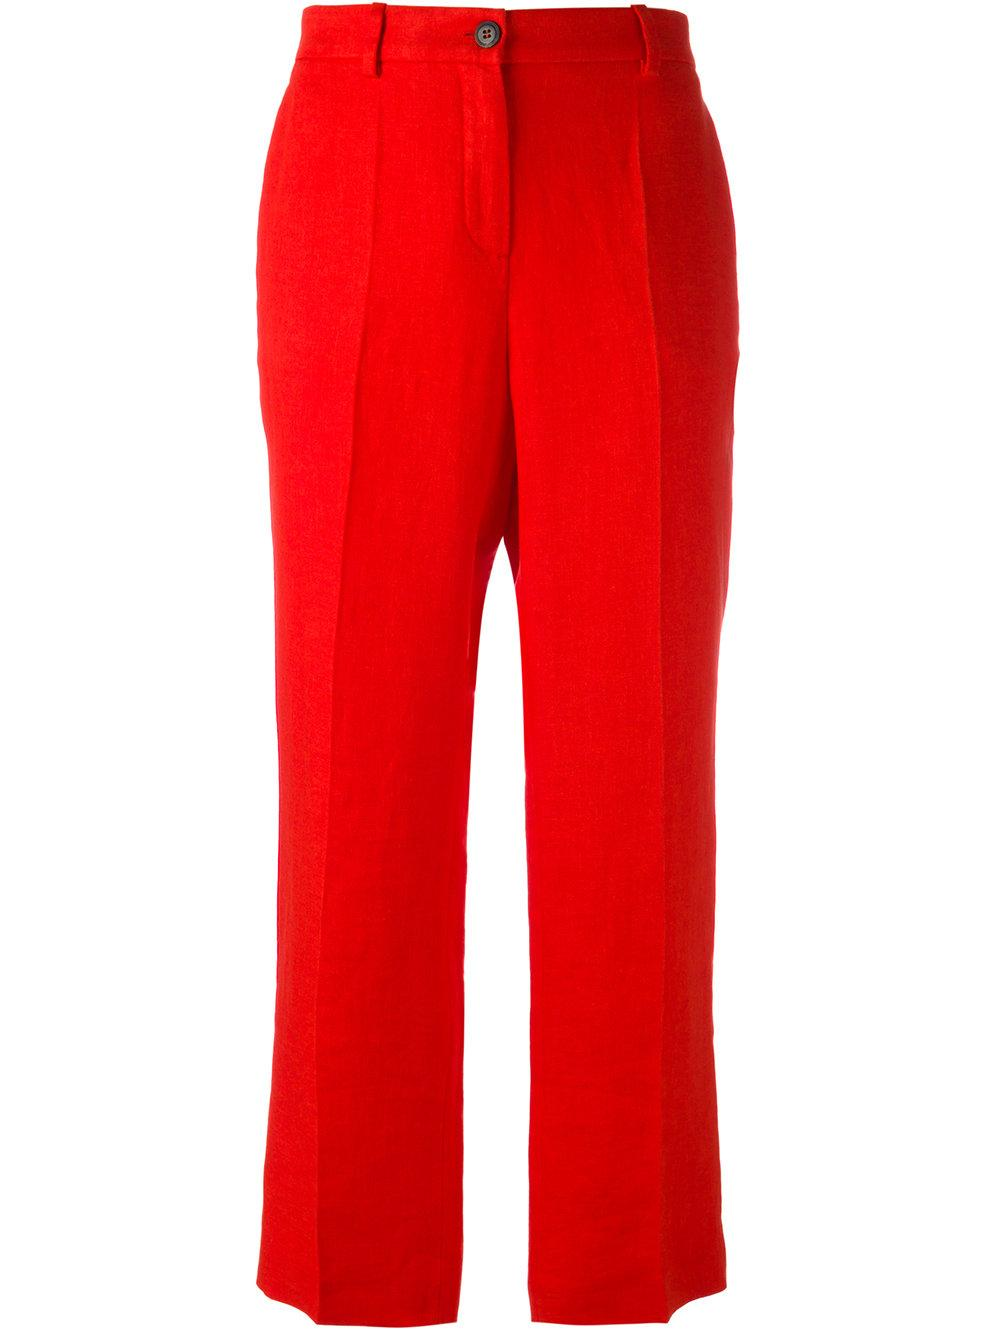 Find red linen pants at ShopStyle. Shop the latest collection of red linen pants from the most popular stores - all in one place. Skip to Content Isabel Marant Women's Ennya Laminated Cotton-Linen Trousers-Dark Red $ Get a .